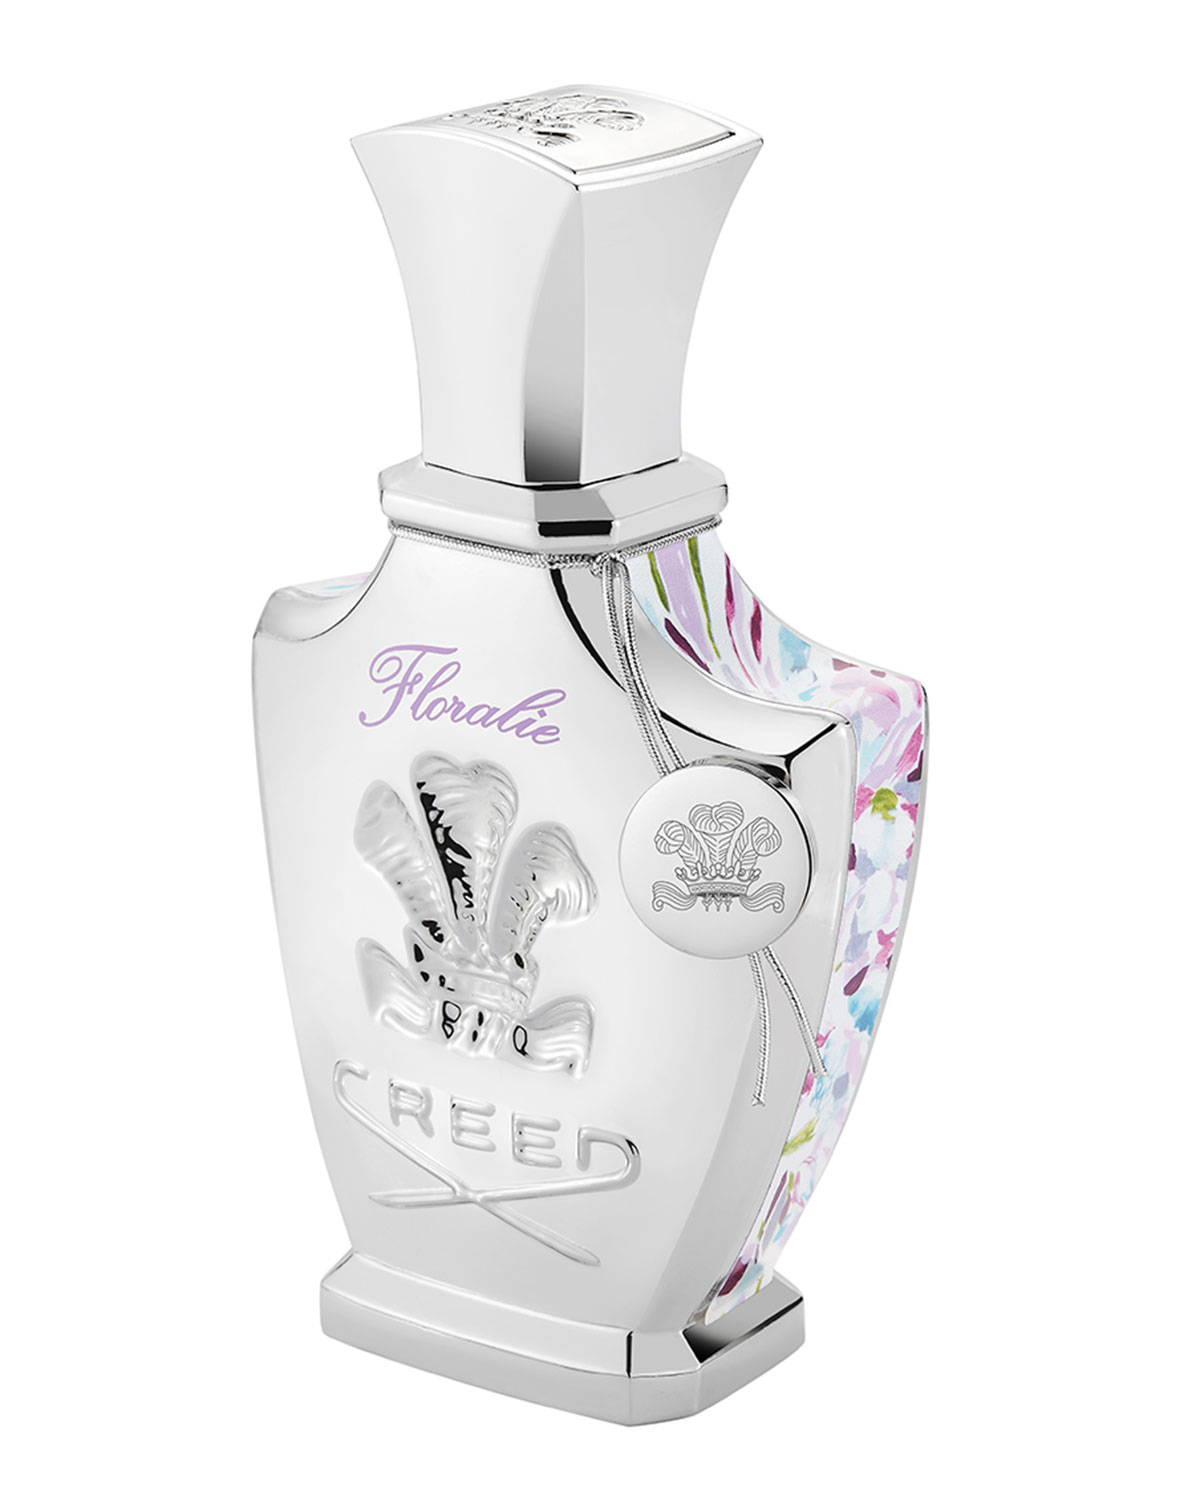 Creed Floralie Perfume Limited Edition Bottle 25 Oz 75 Ml